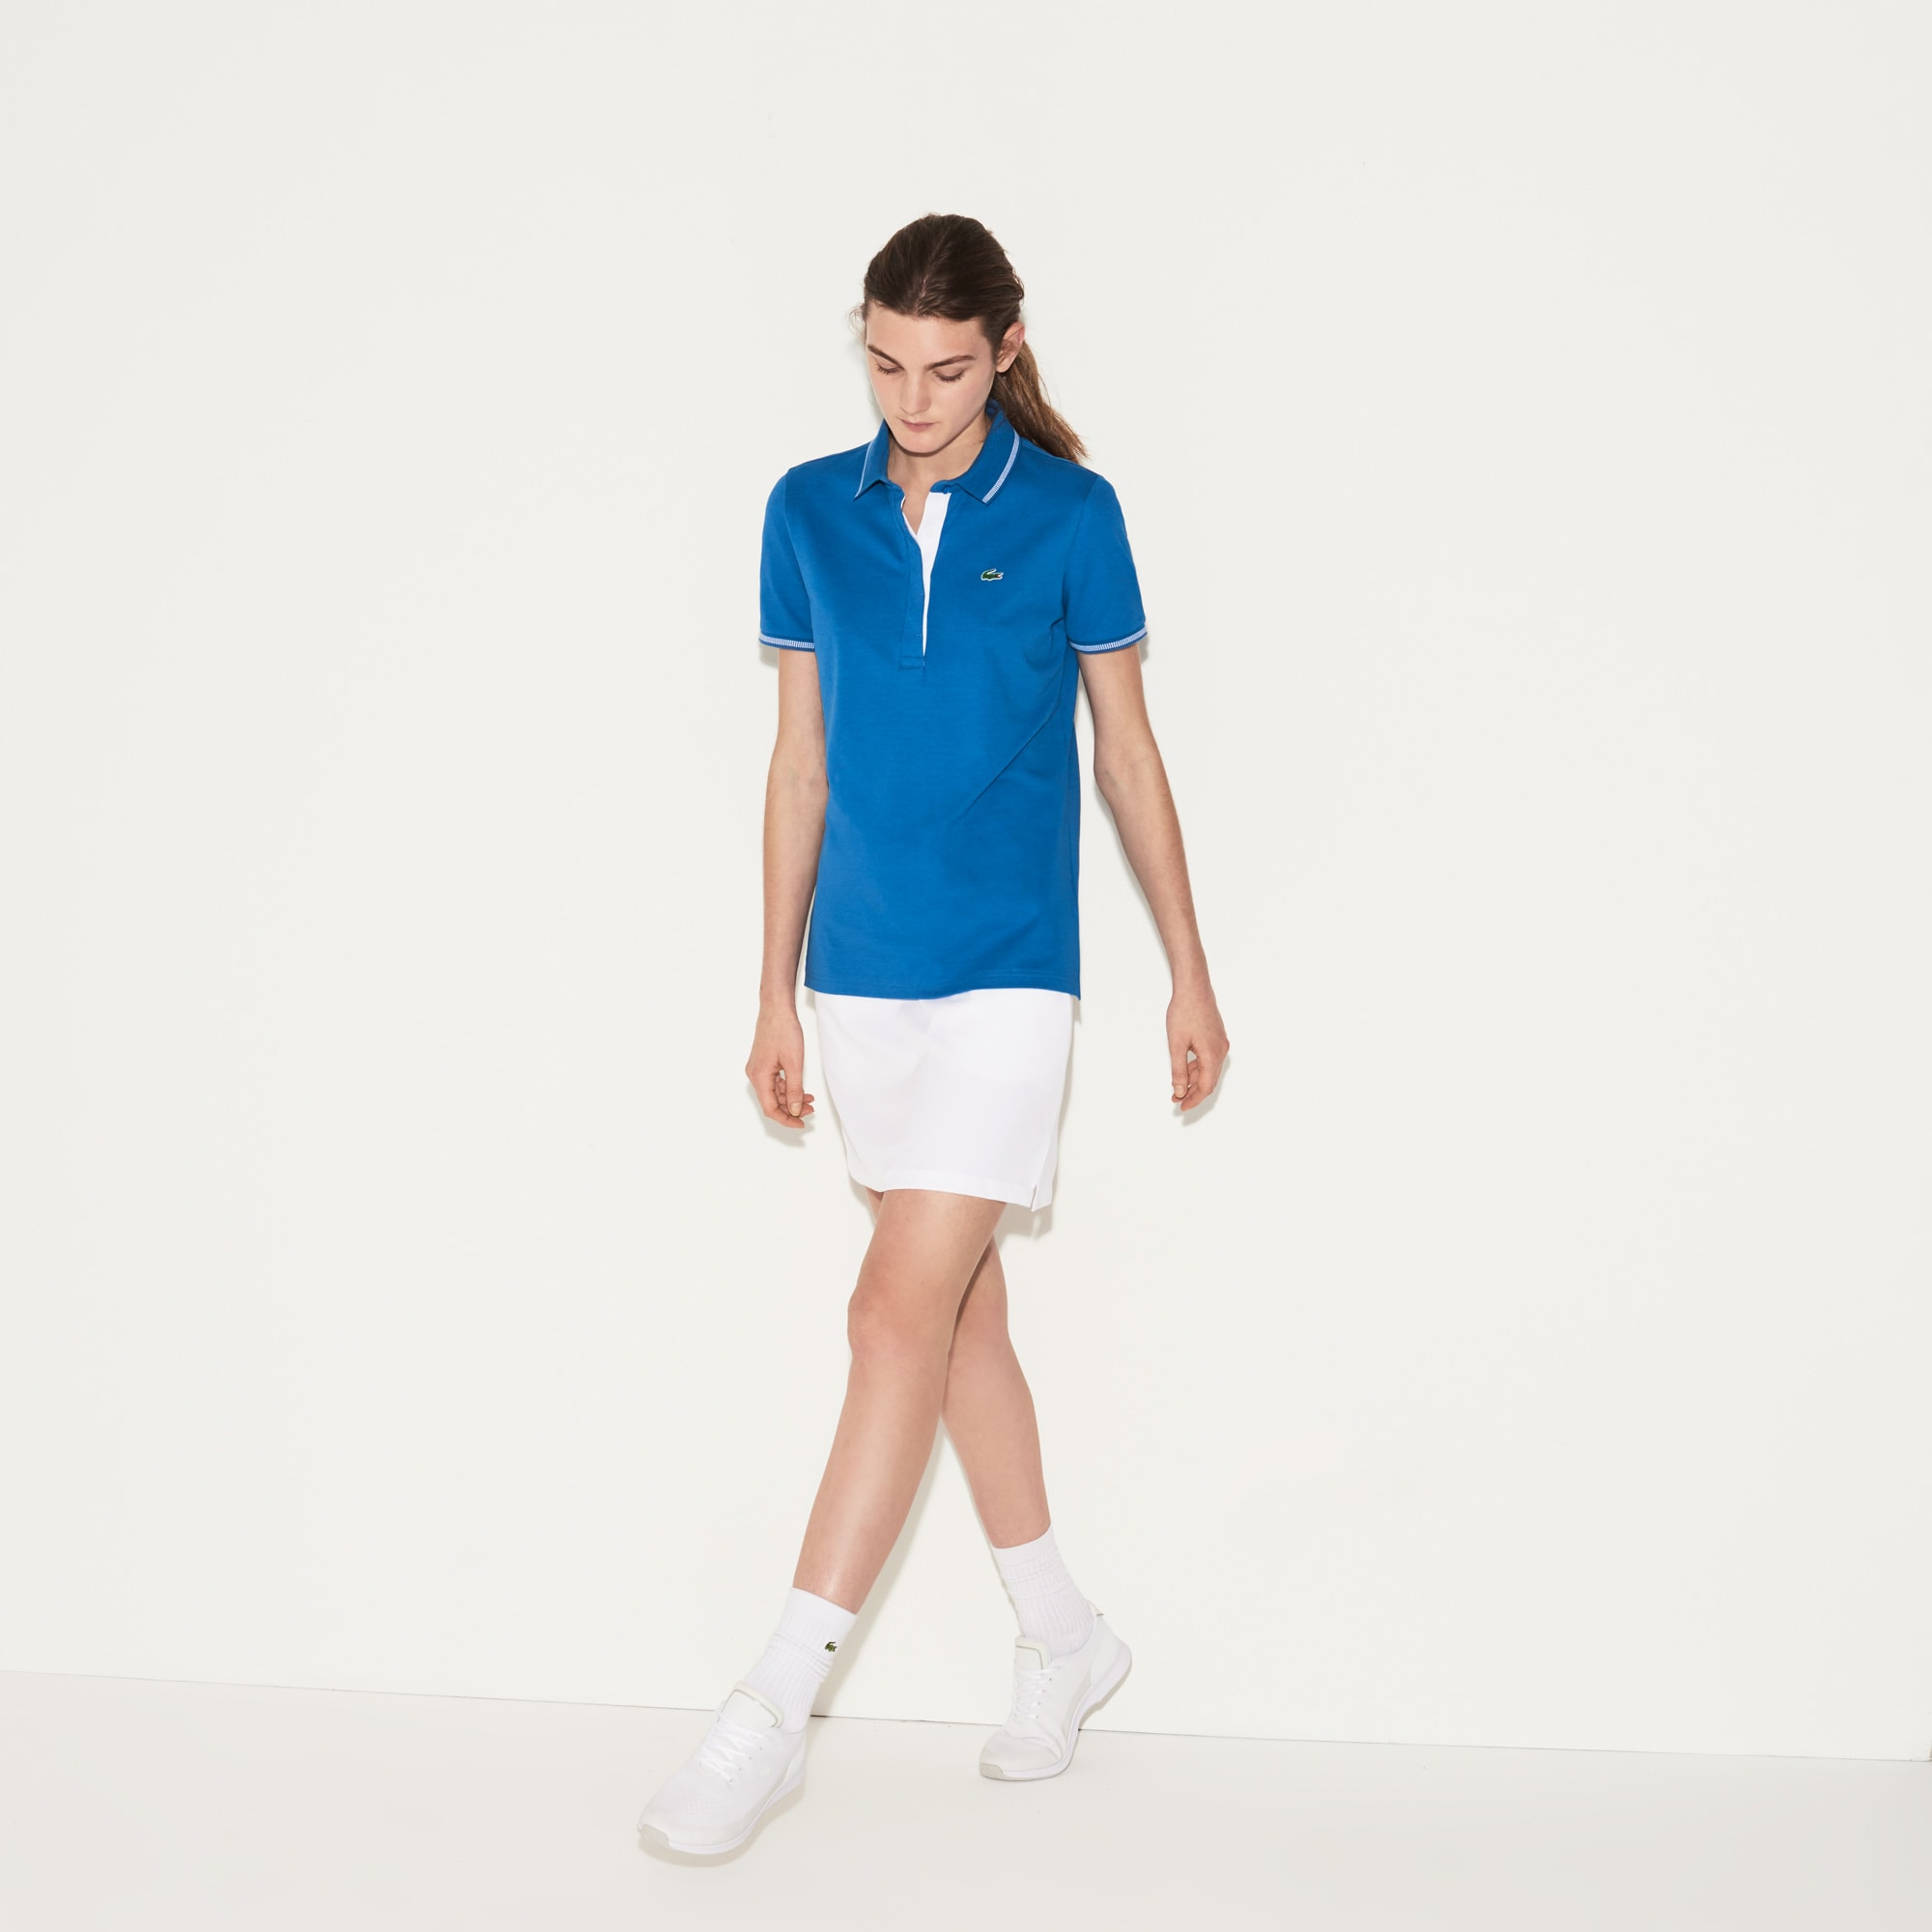 Women's SPORT Light Stretch Golf Polo